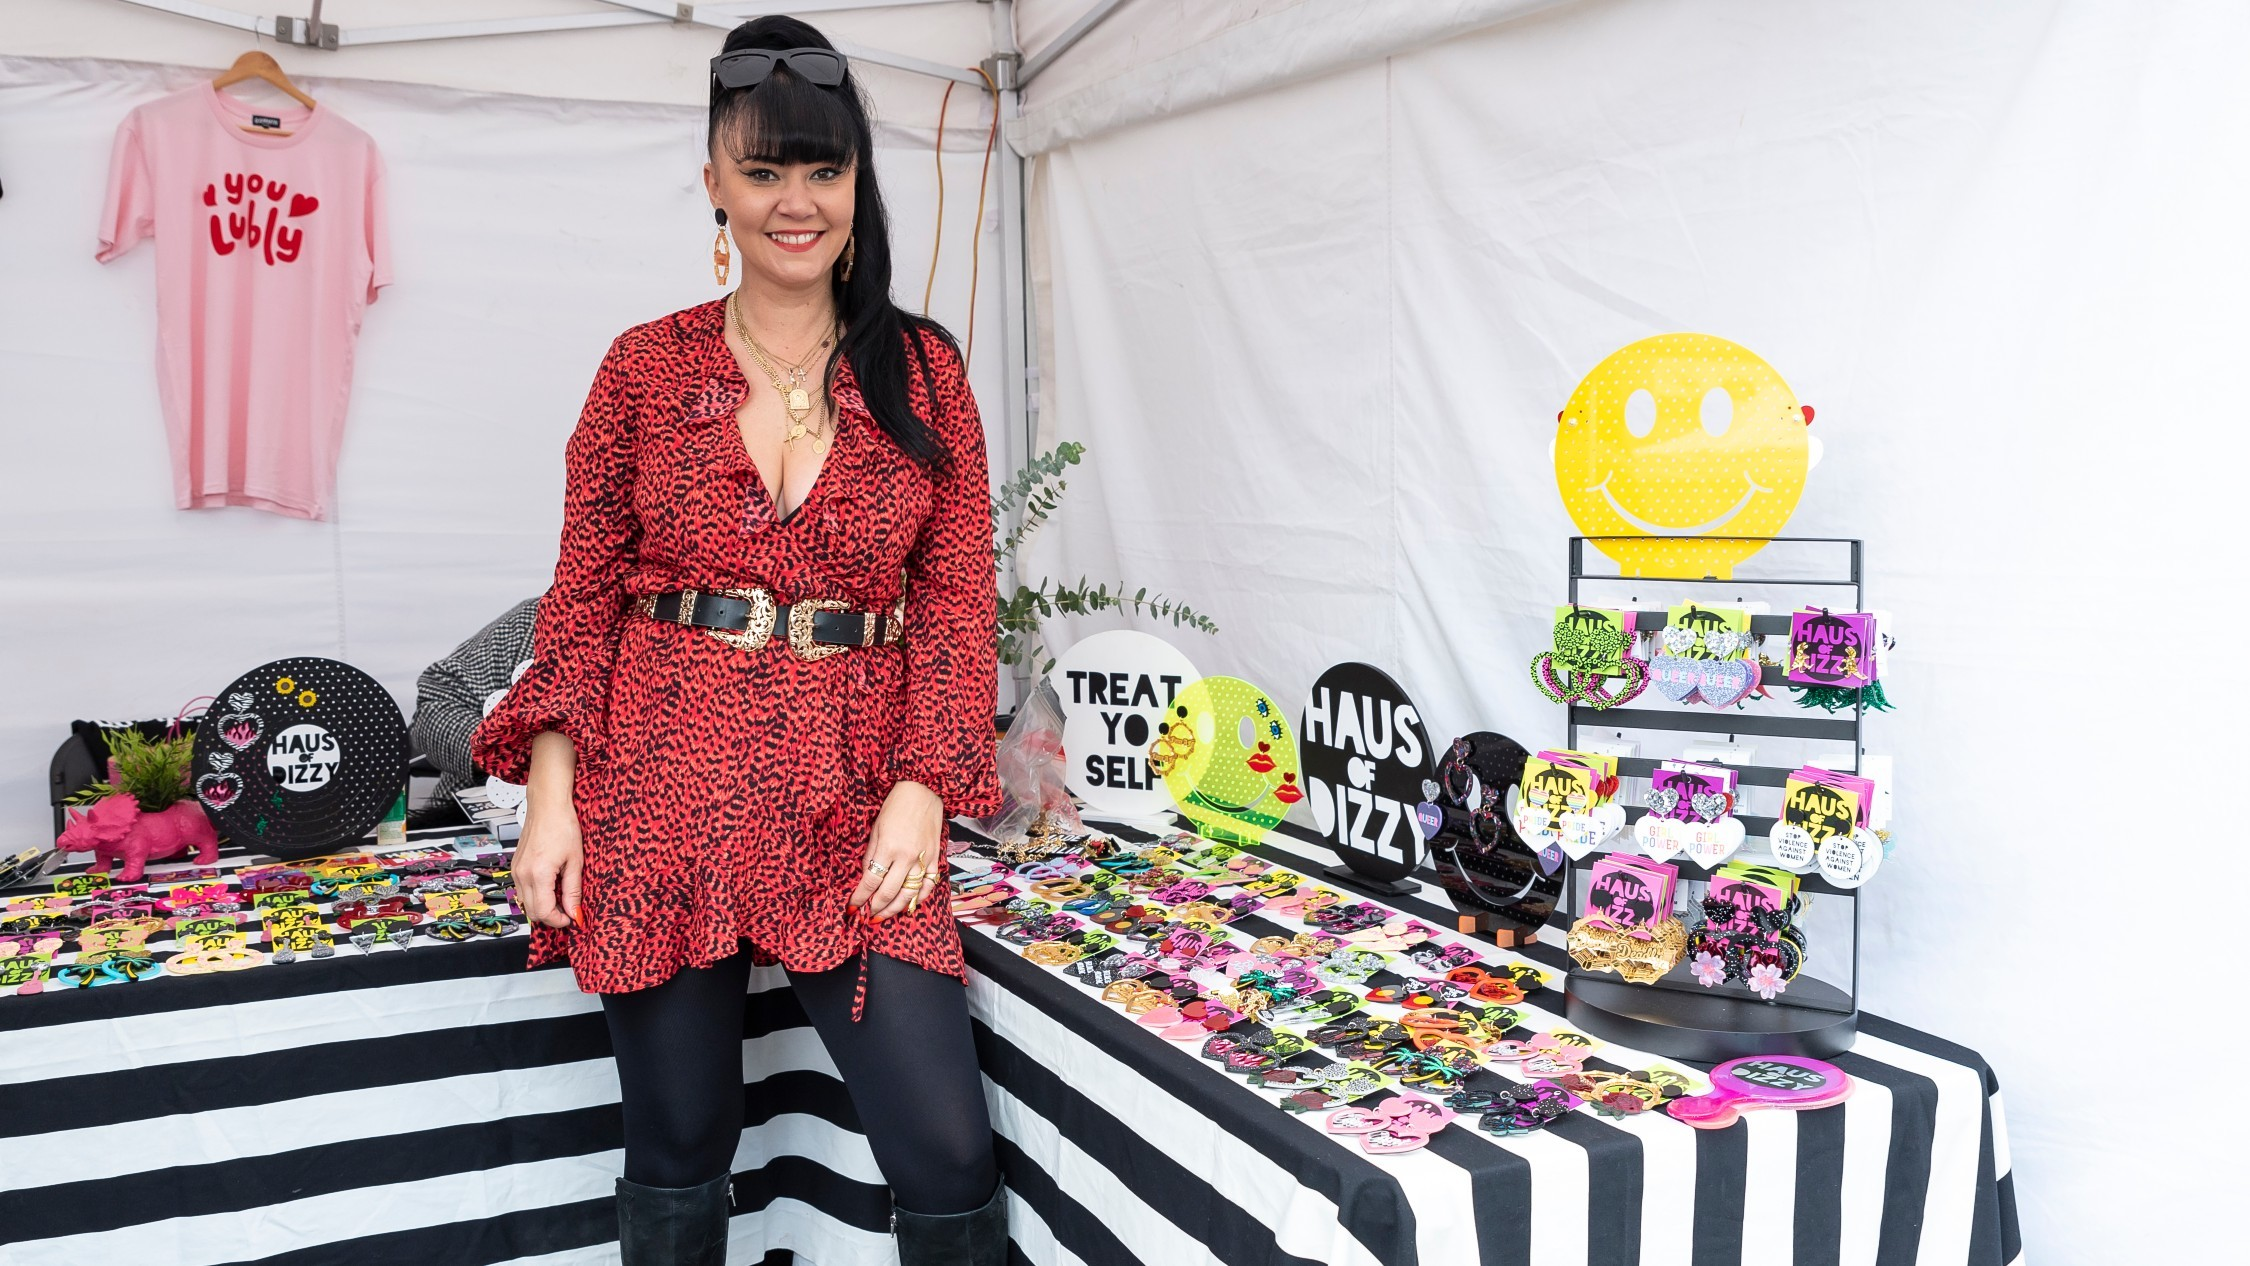 A woman with long dark hair tied in a high ponytail stands in front of colourful jewellery inside a white market tent. She is wearing a red and black ruffled blouse with a chunky belt and smiling.